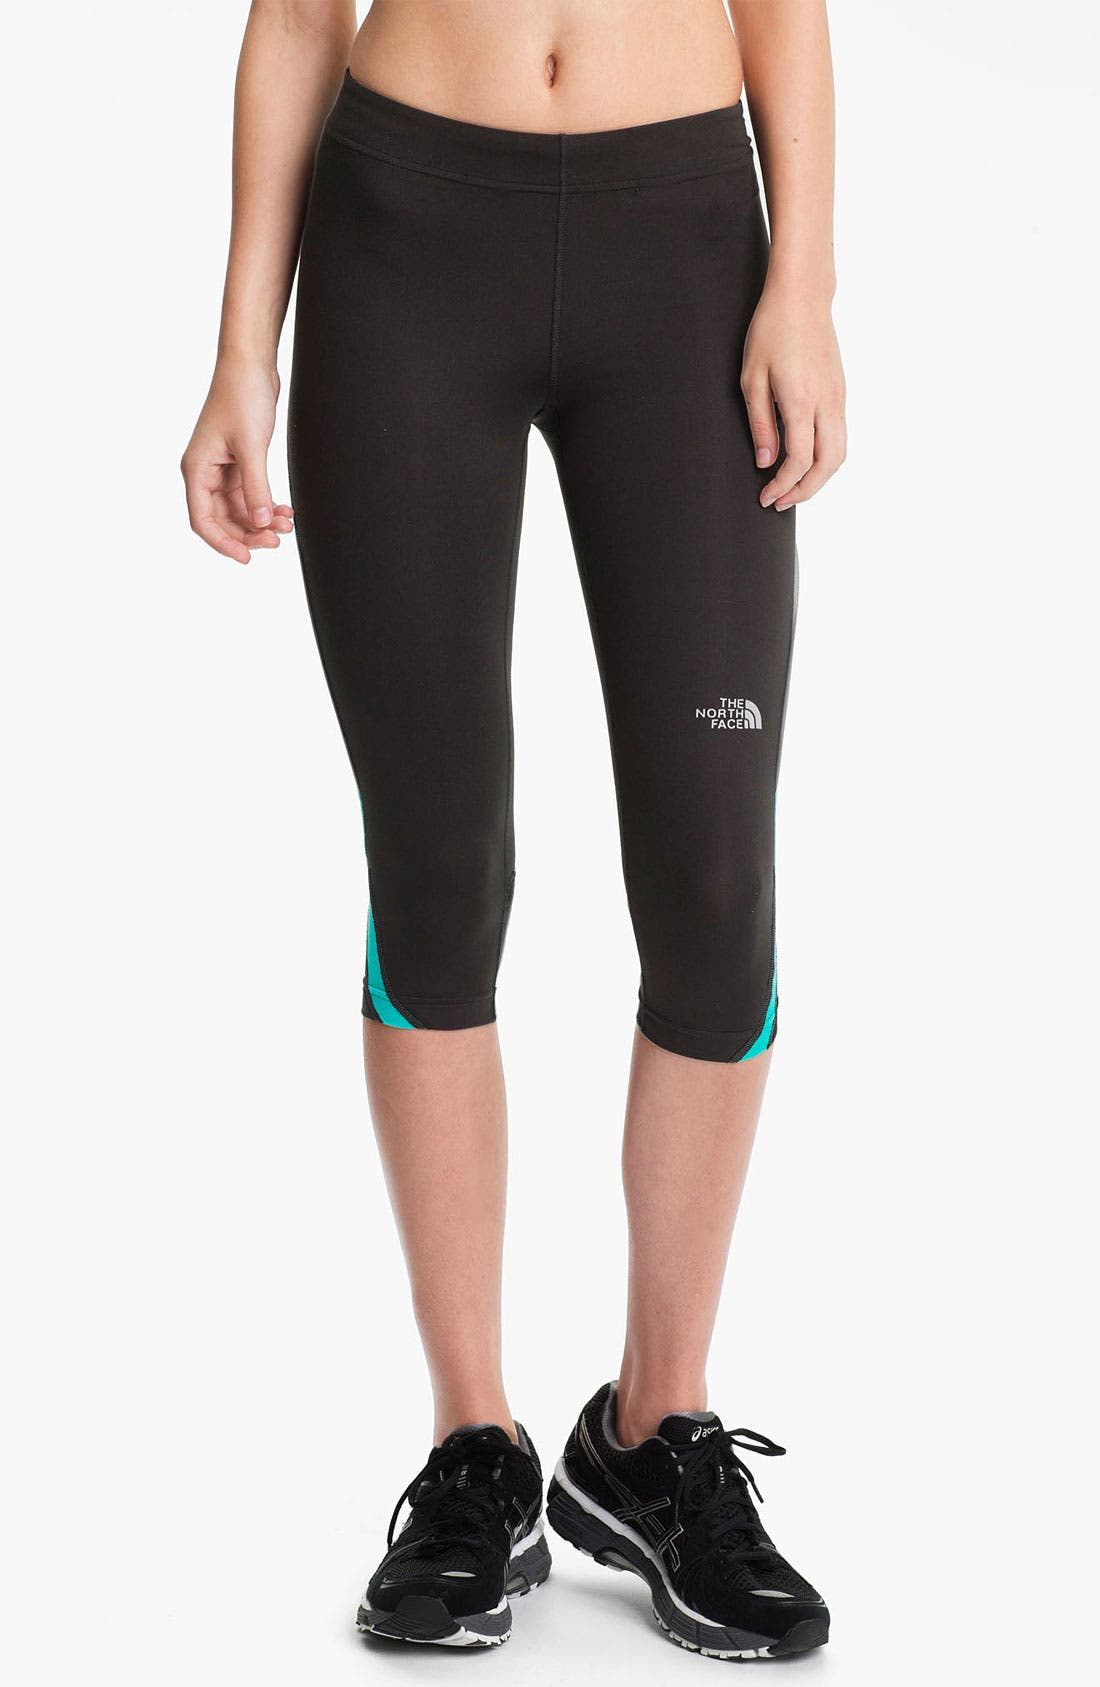 Main Image - The North Face 'GTD' Capri Pants